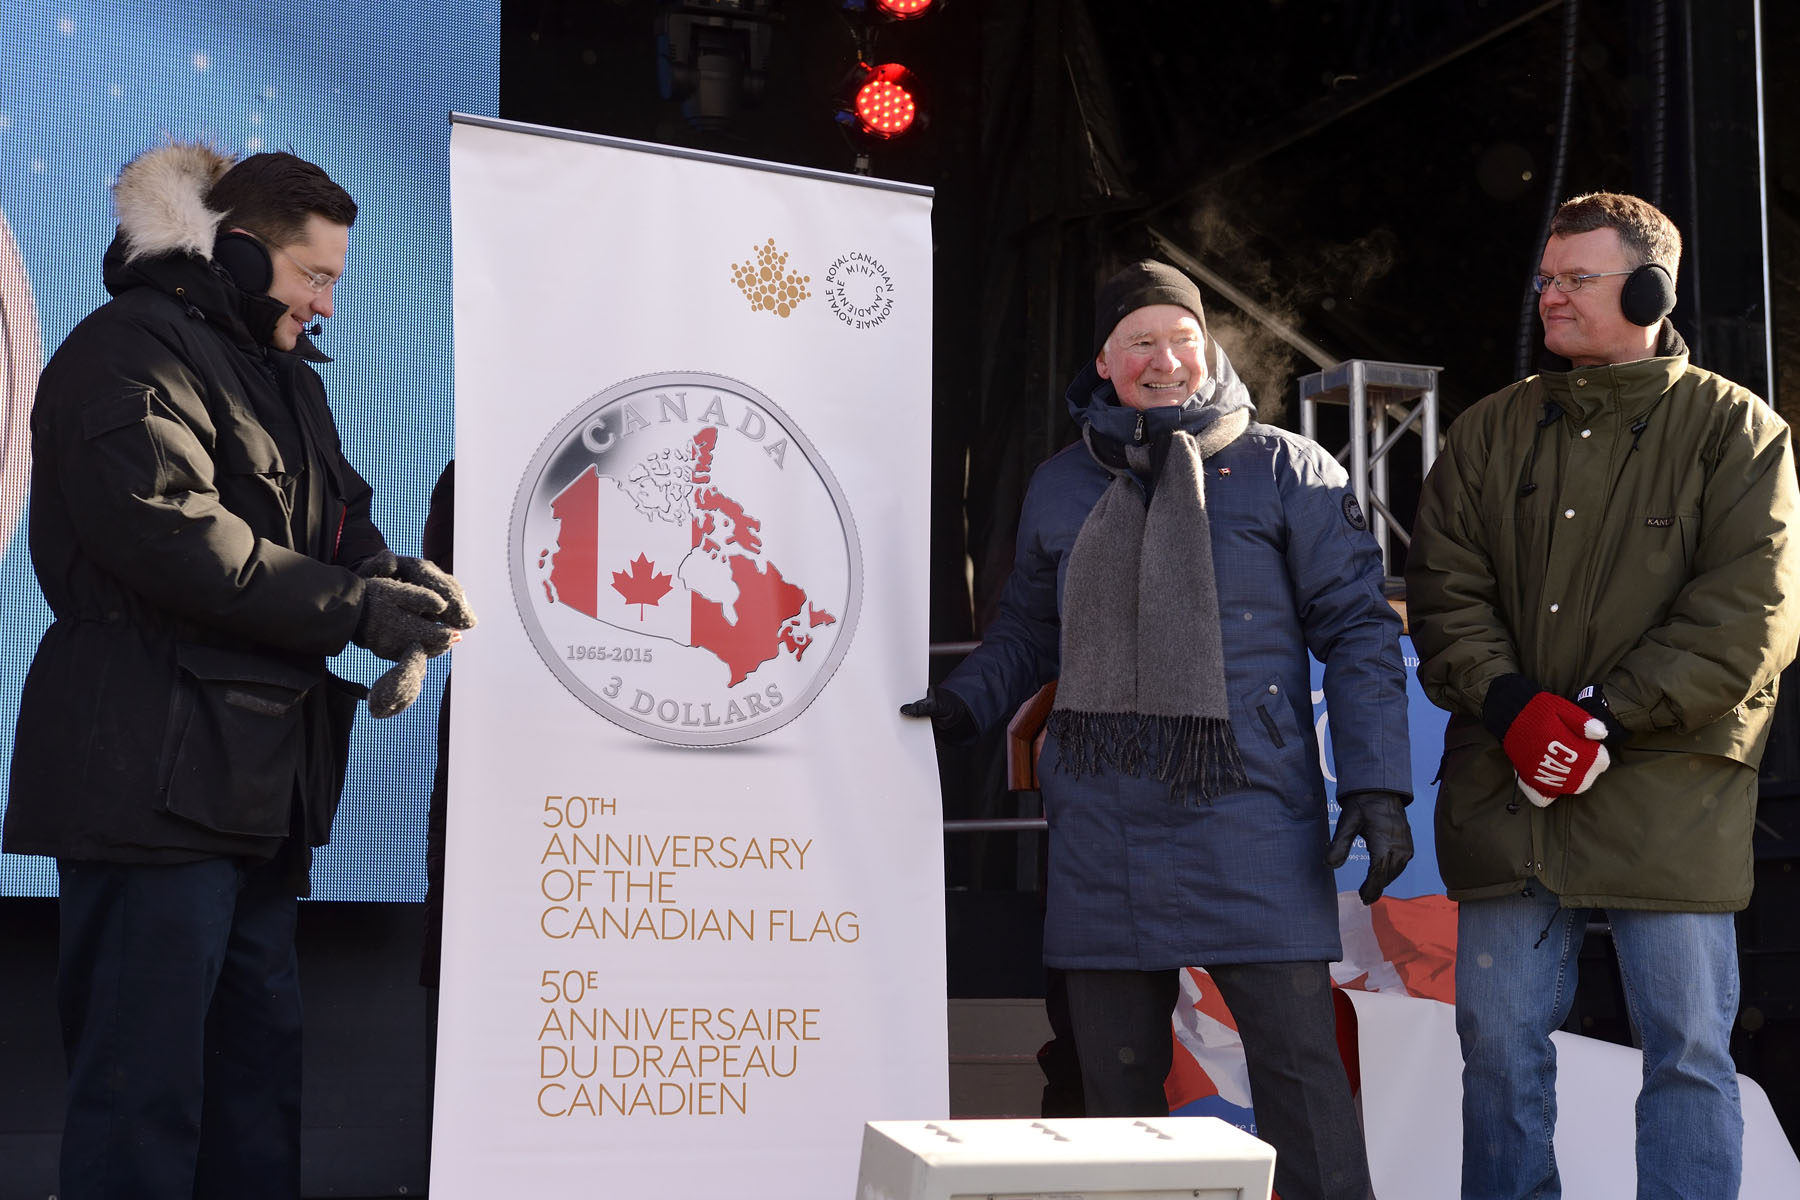 The Governor General also unveiled a new coin with Mr. Michel Boucher, Vice President of the Royal Canadian Mint (right) and Minister Poilievre (left).